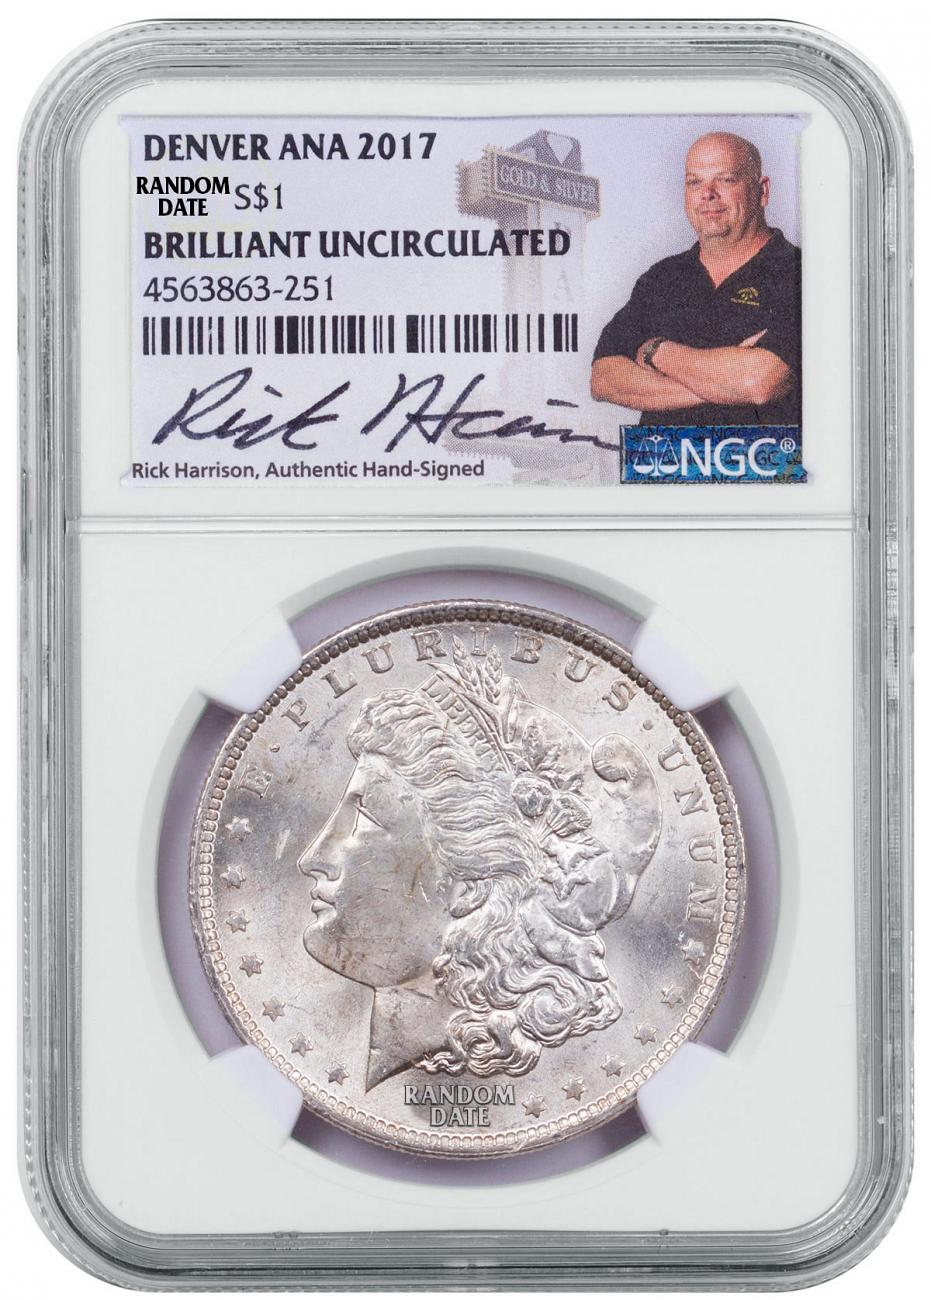 Random Date Morgan Silver Dollar Denver ANA 2017 NGC BU Exclusive Rick Harrison Signed Label